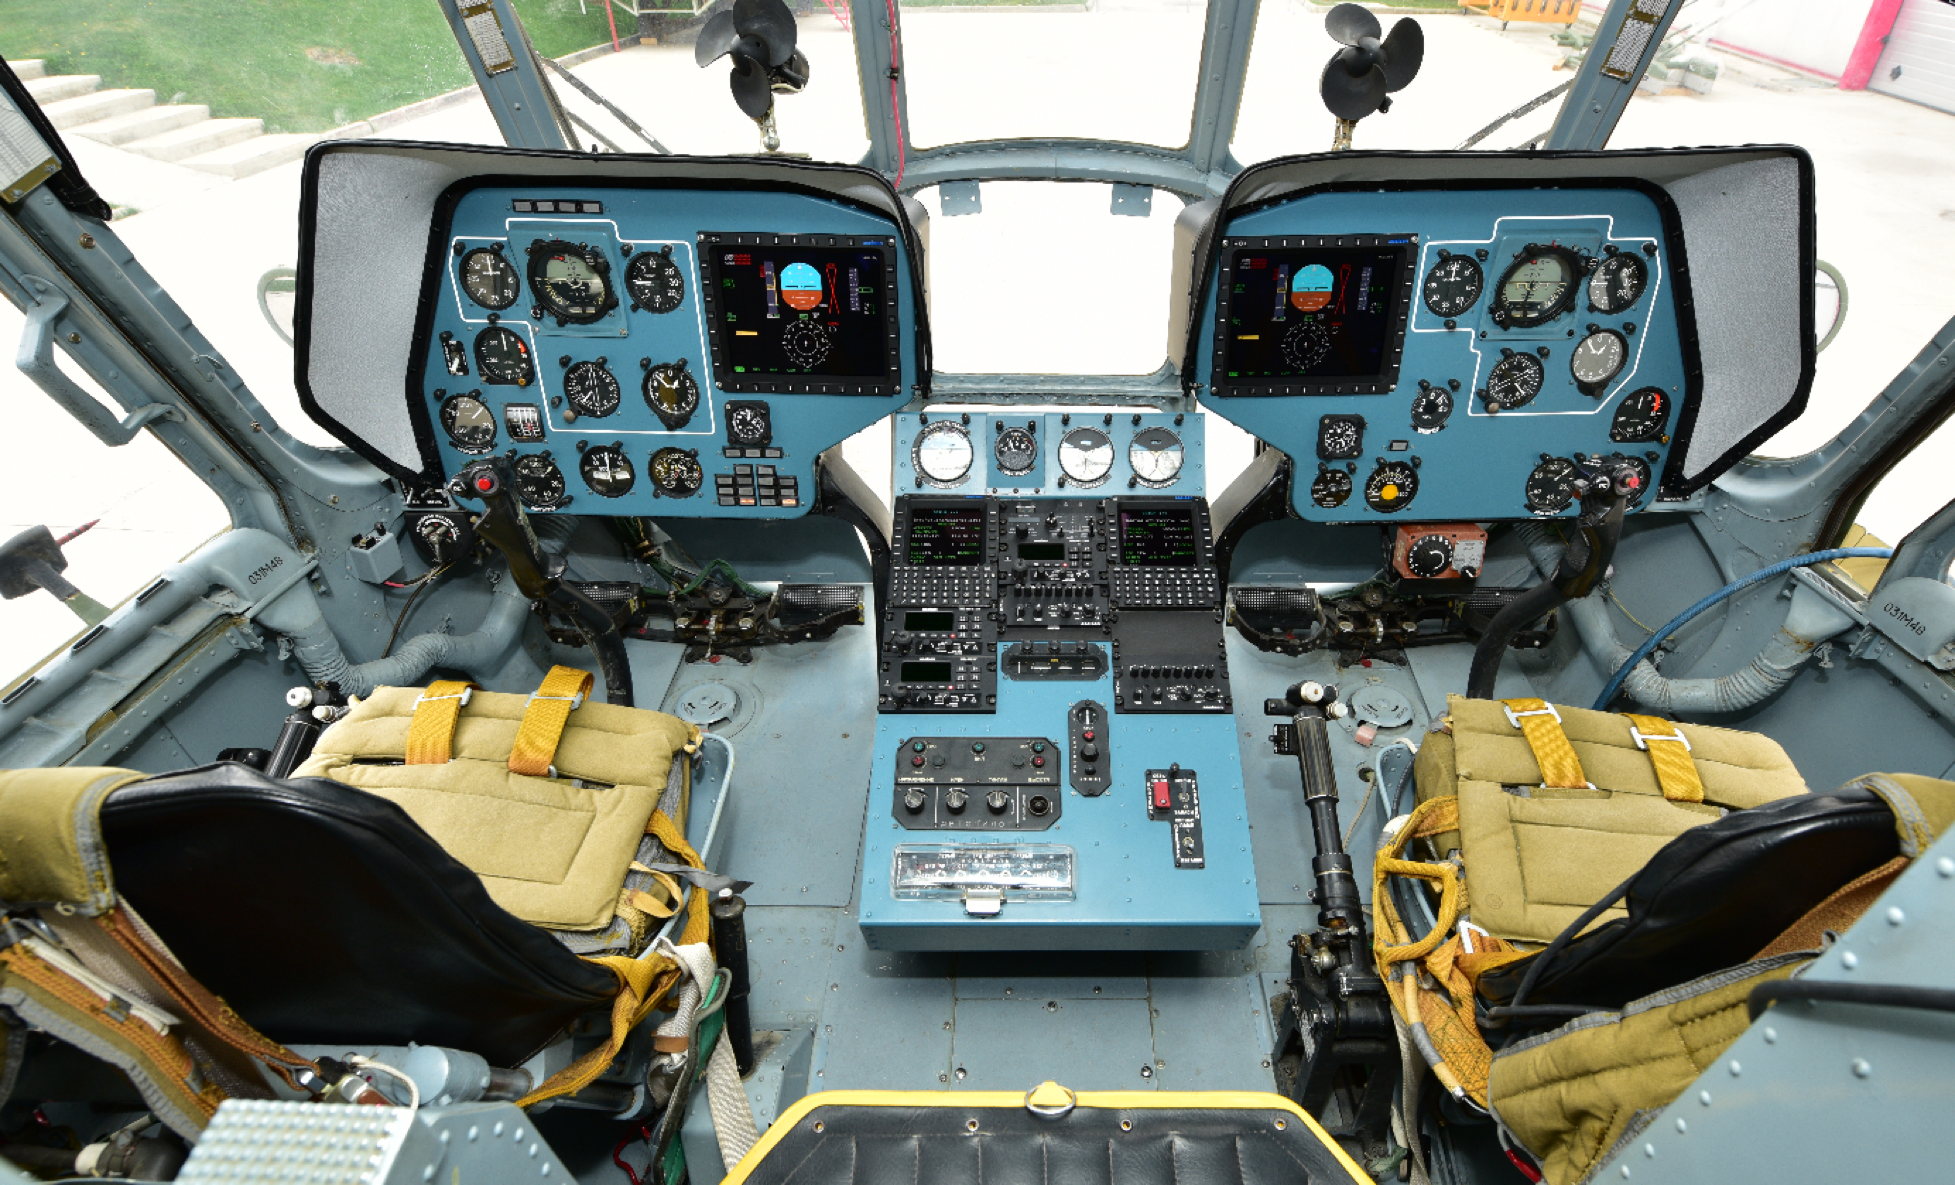 Aselsan Cost Effective Solution for Mi-17 Helicopters